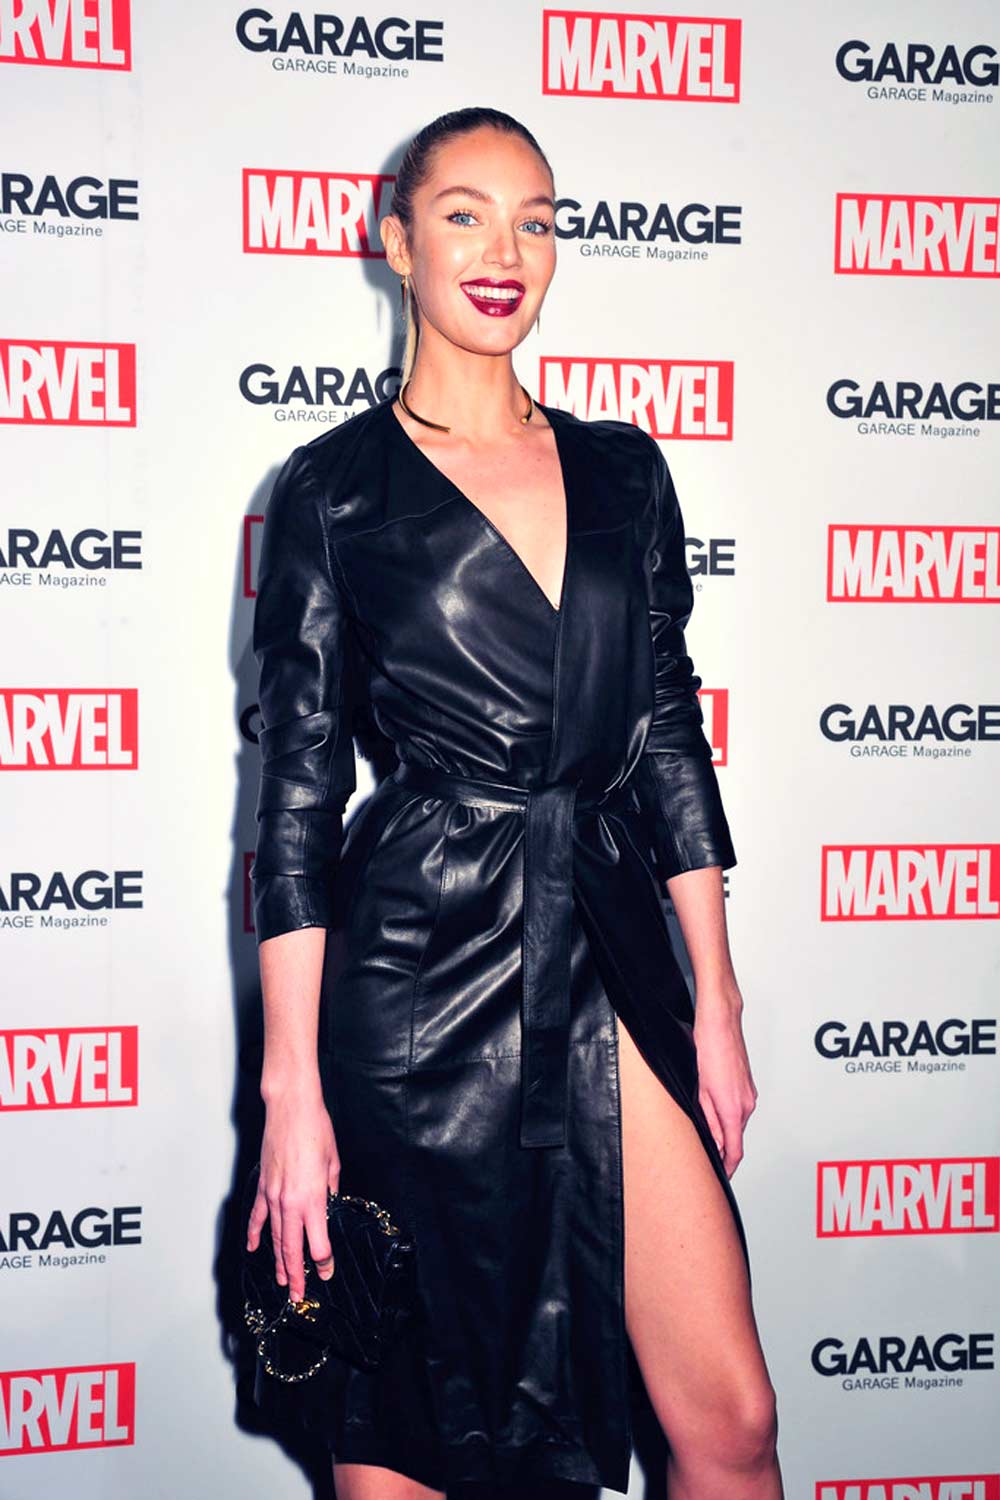 Candice Swanepoel attends Marvel And Garage Magazine New York Fashion Week